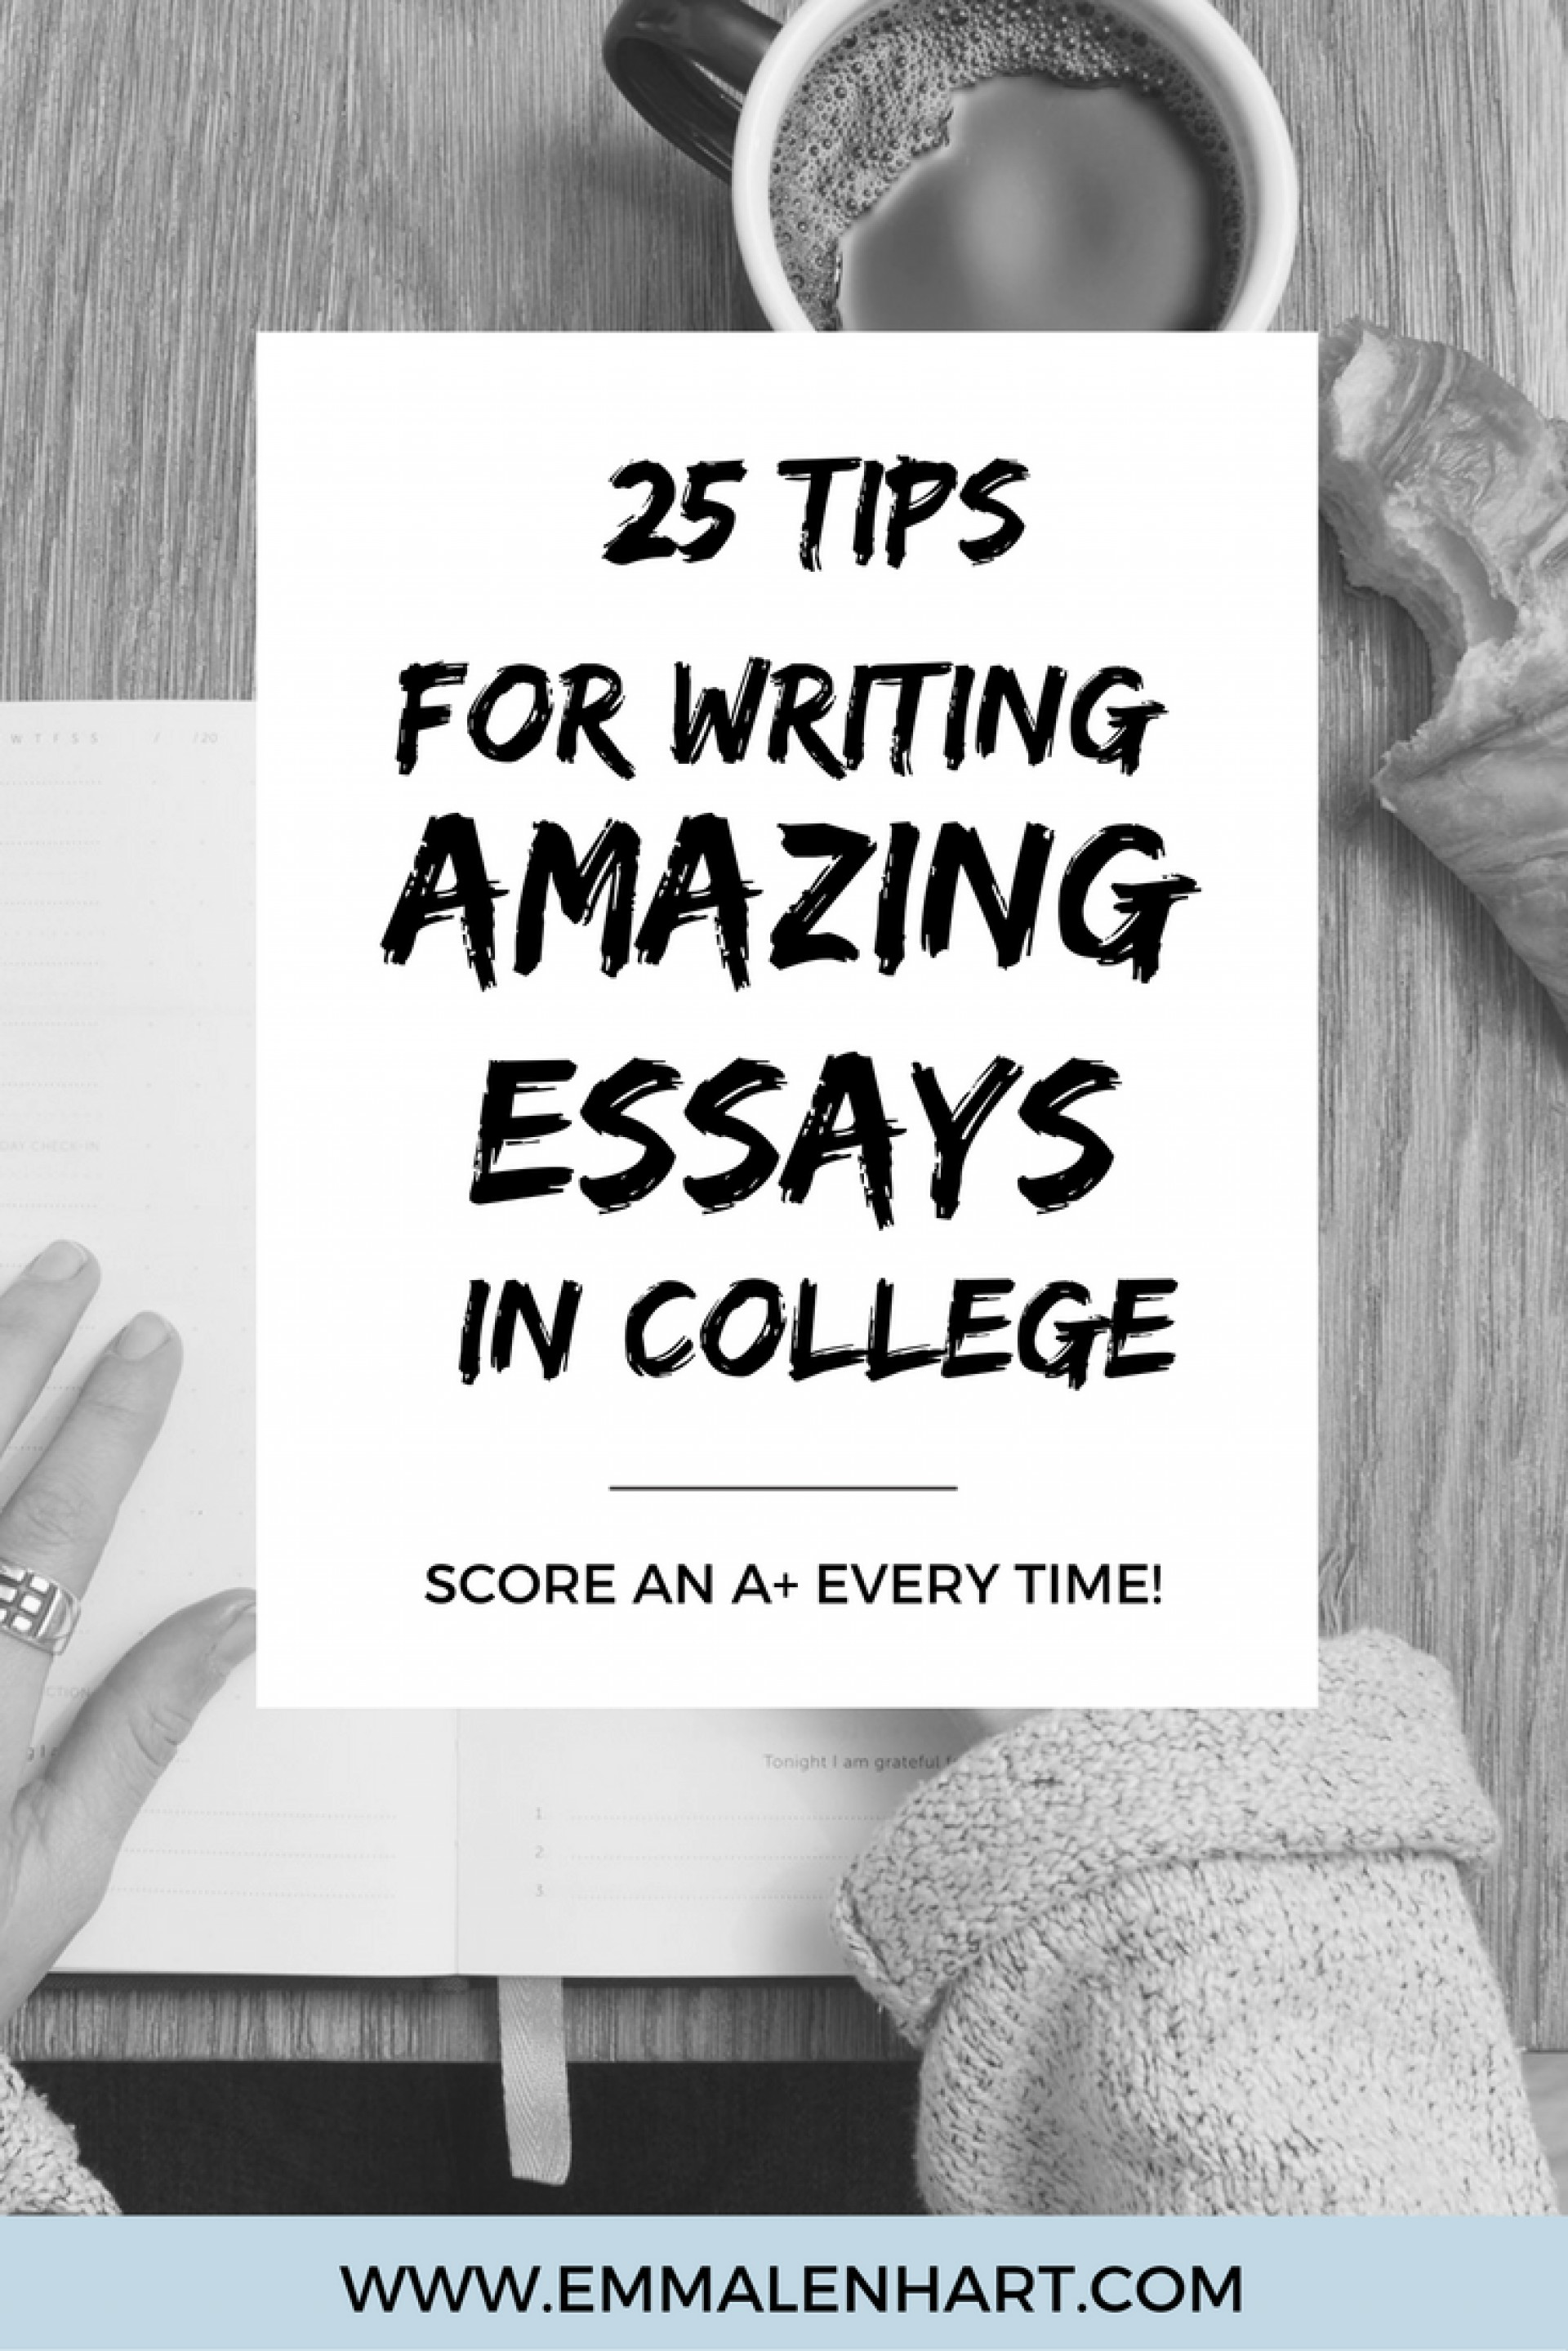 002 College Essay Writing Tips Example Imposing Video Application 1920